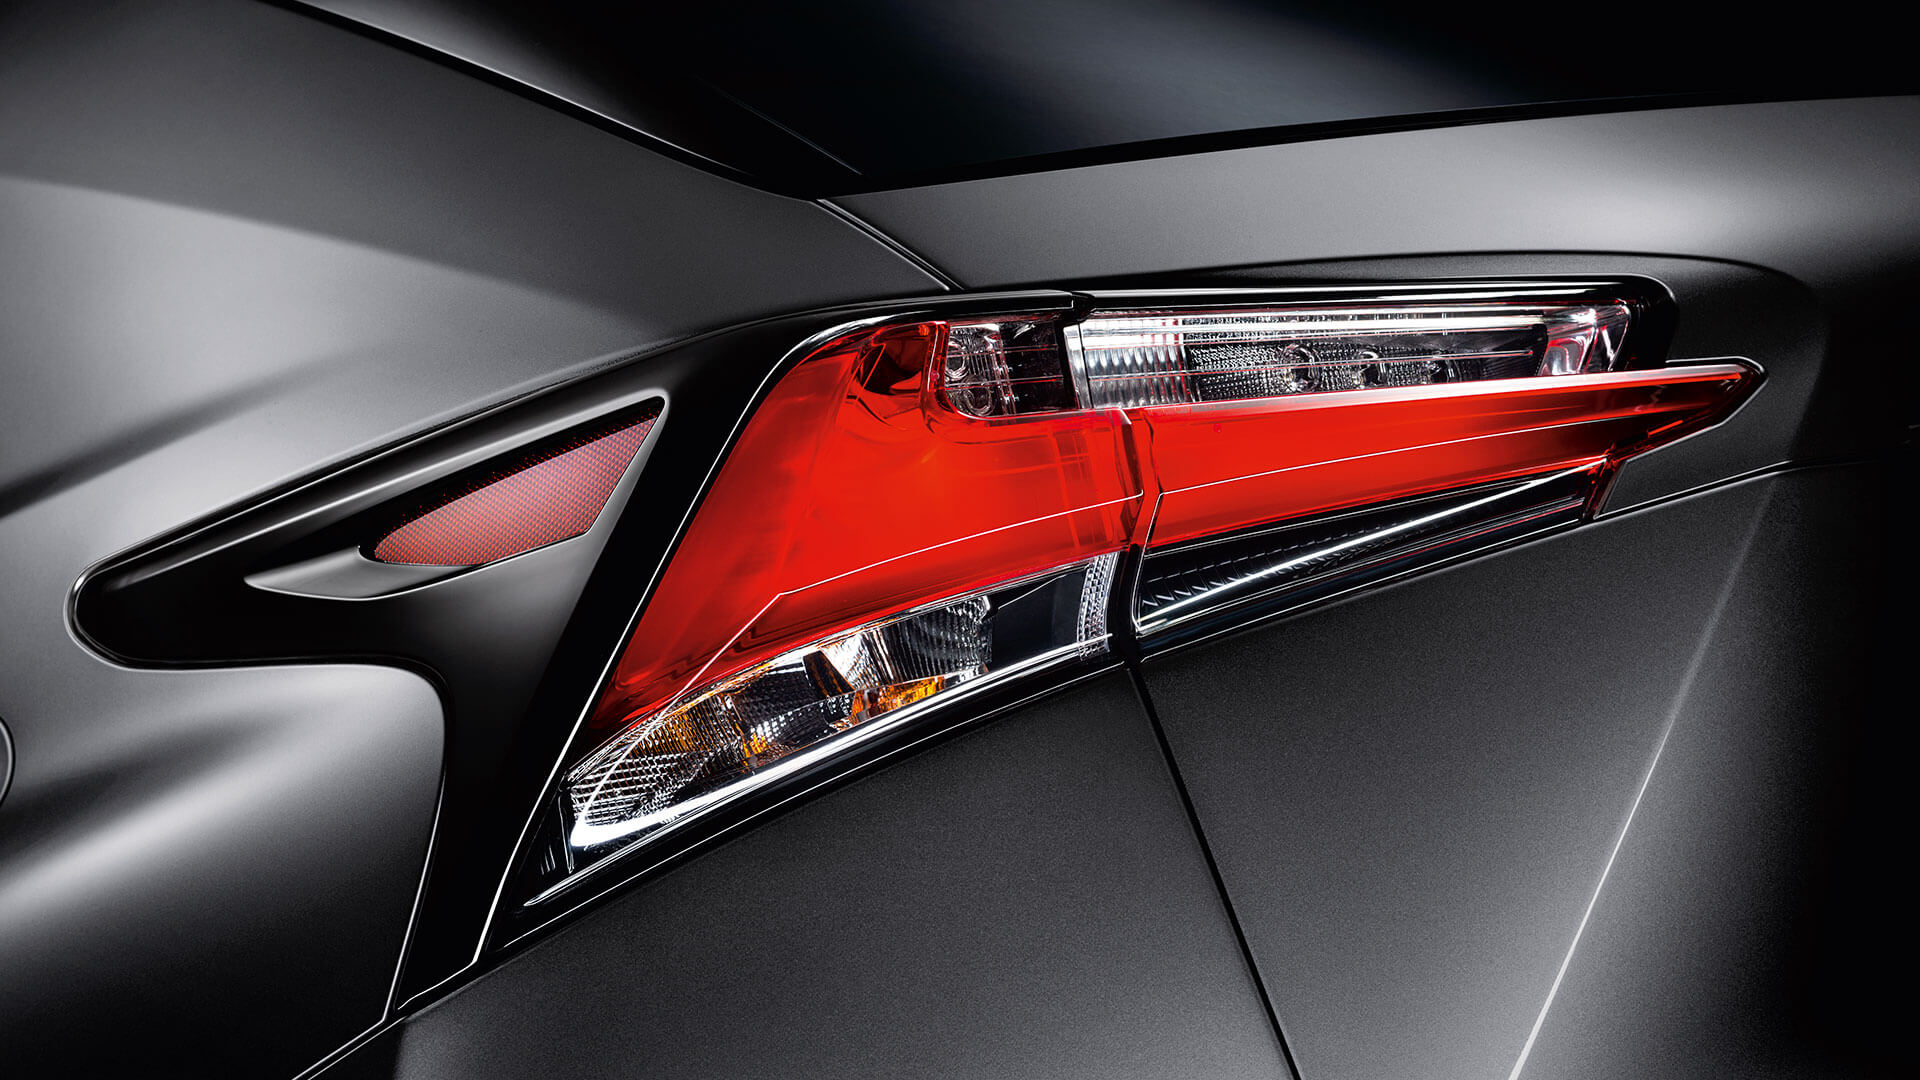 2017 lexus nx 300h features led rear lights